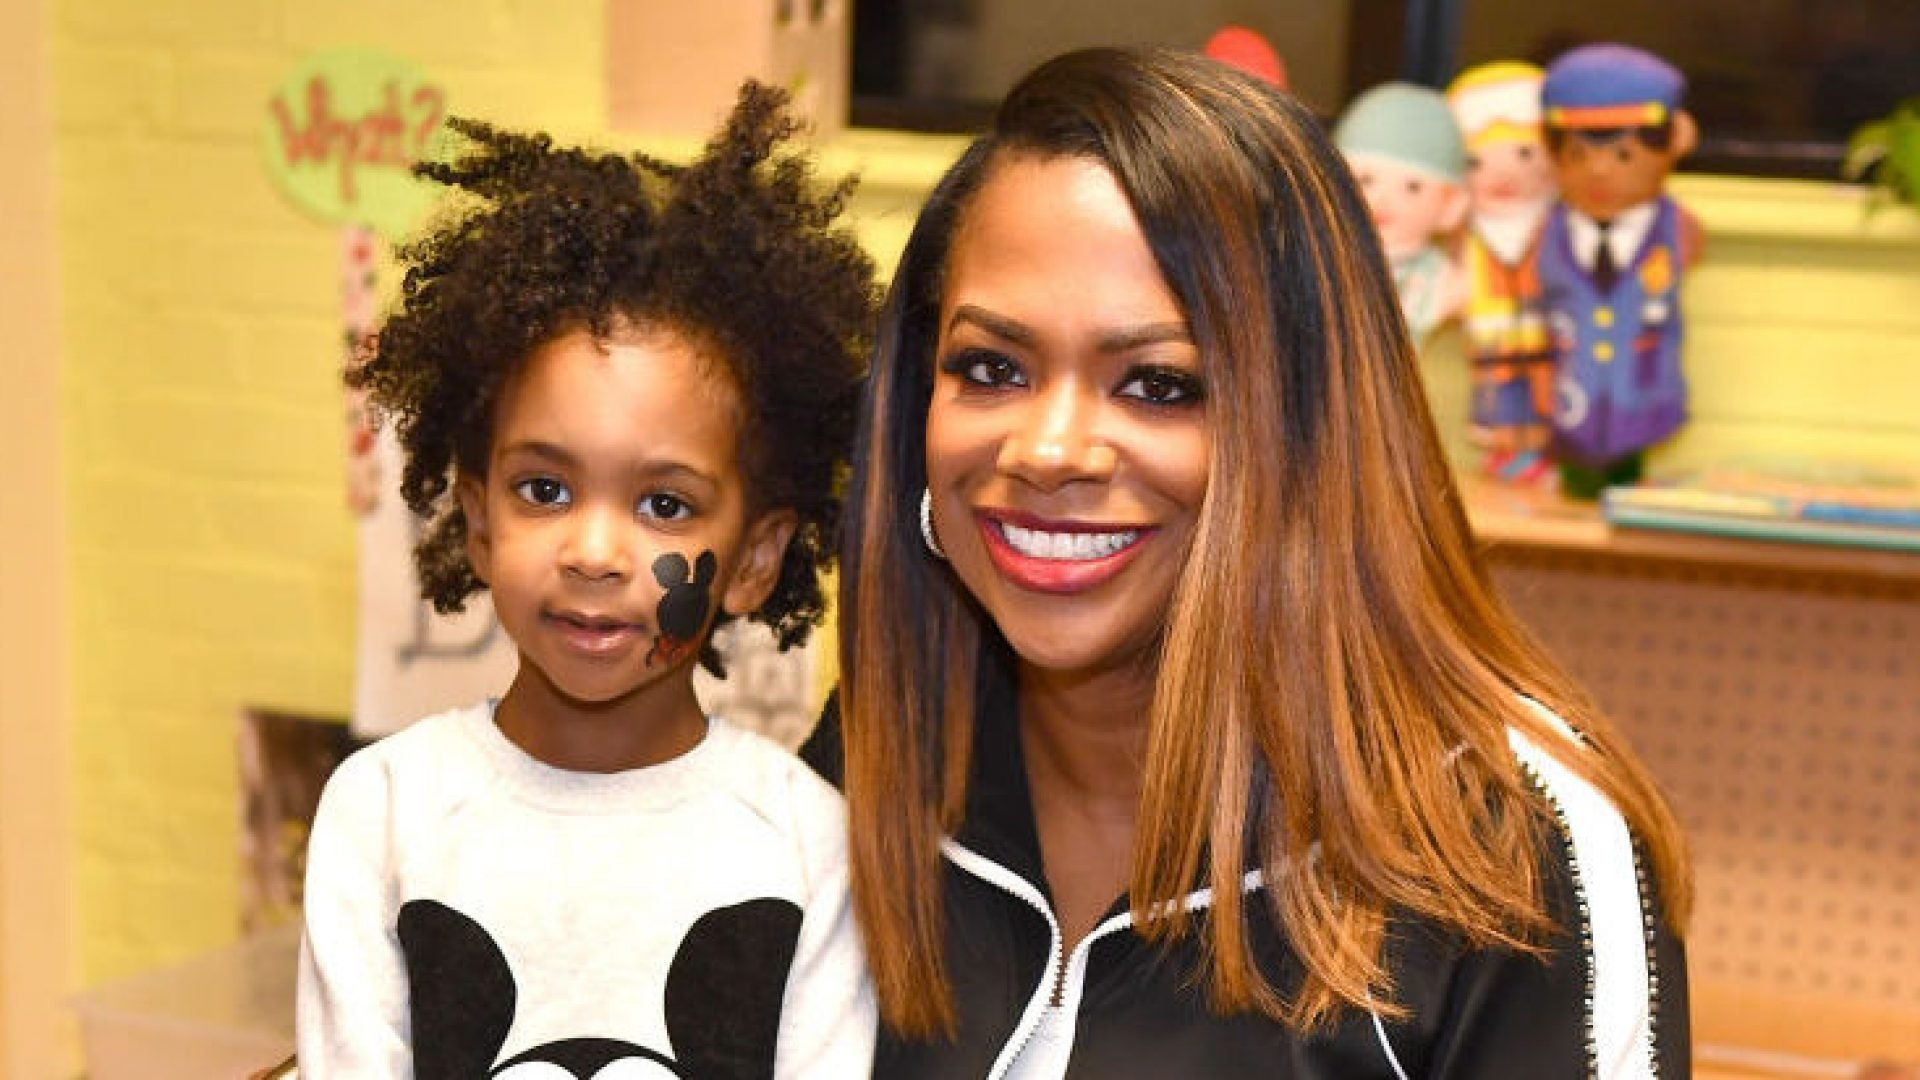 Kandi Burruss On Speaking With Her 4-Year-Old Son Ace About Police Brutality